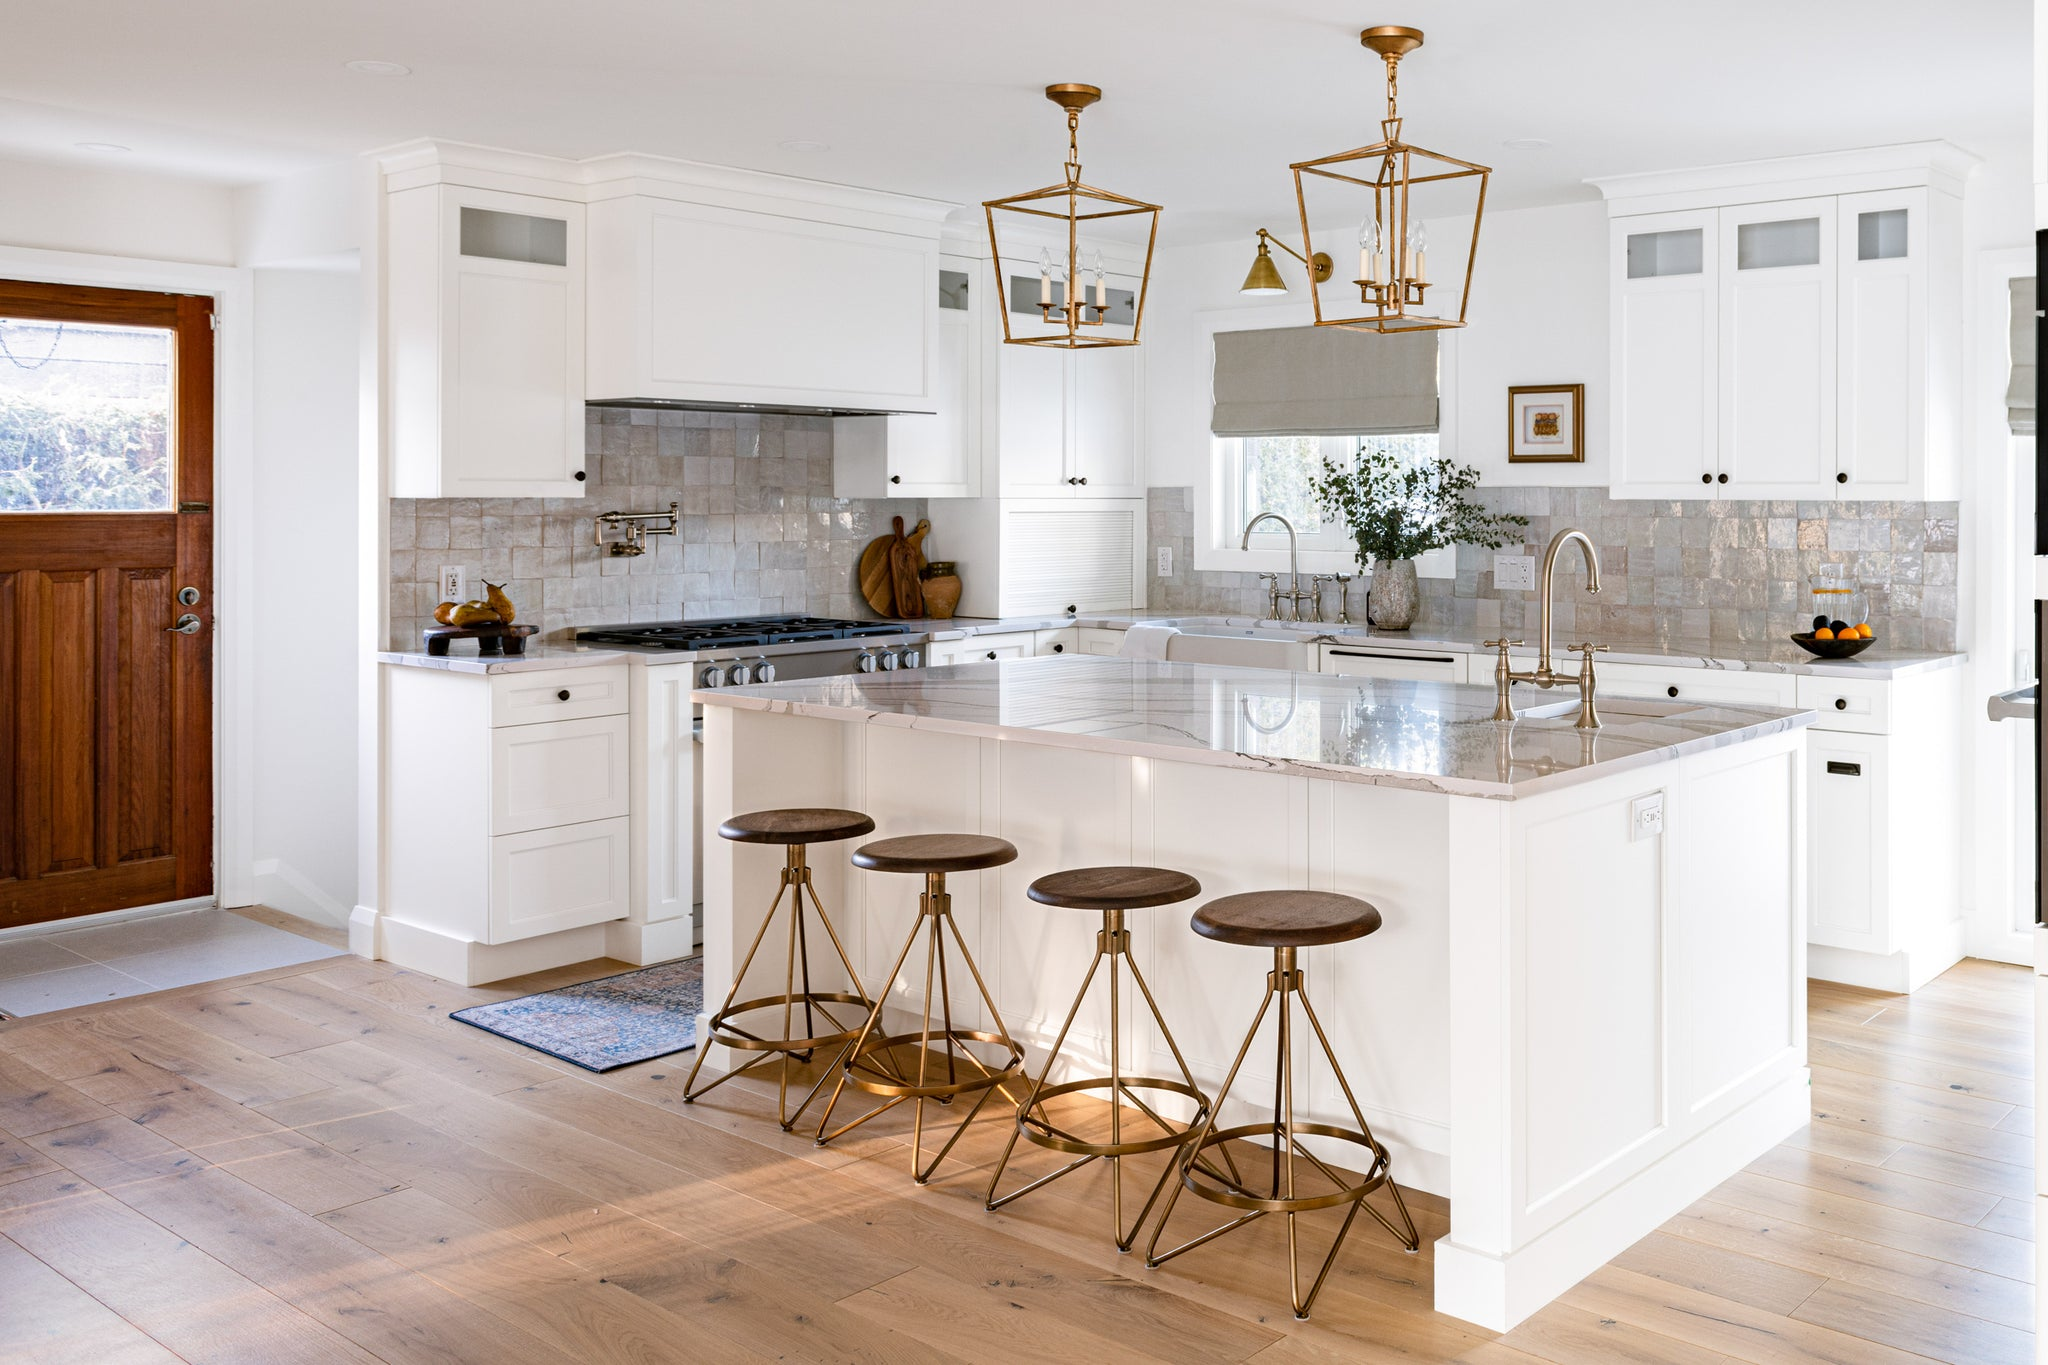 Classic white kitchen with wood accents.